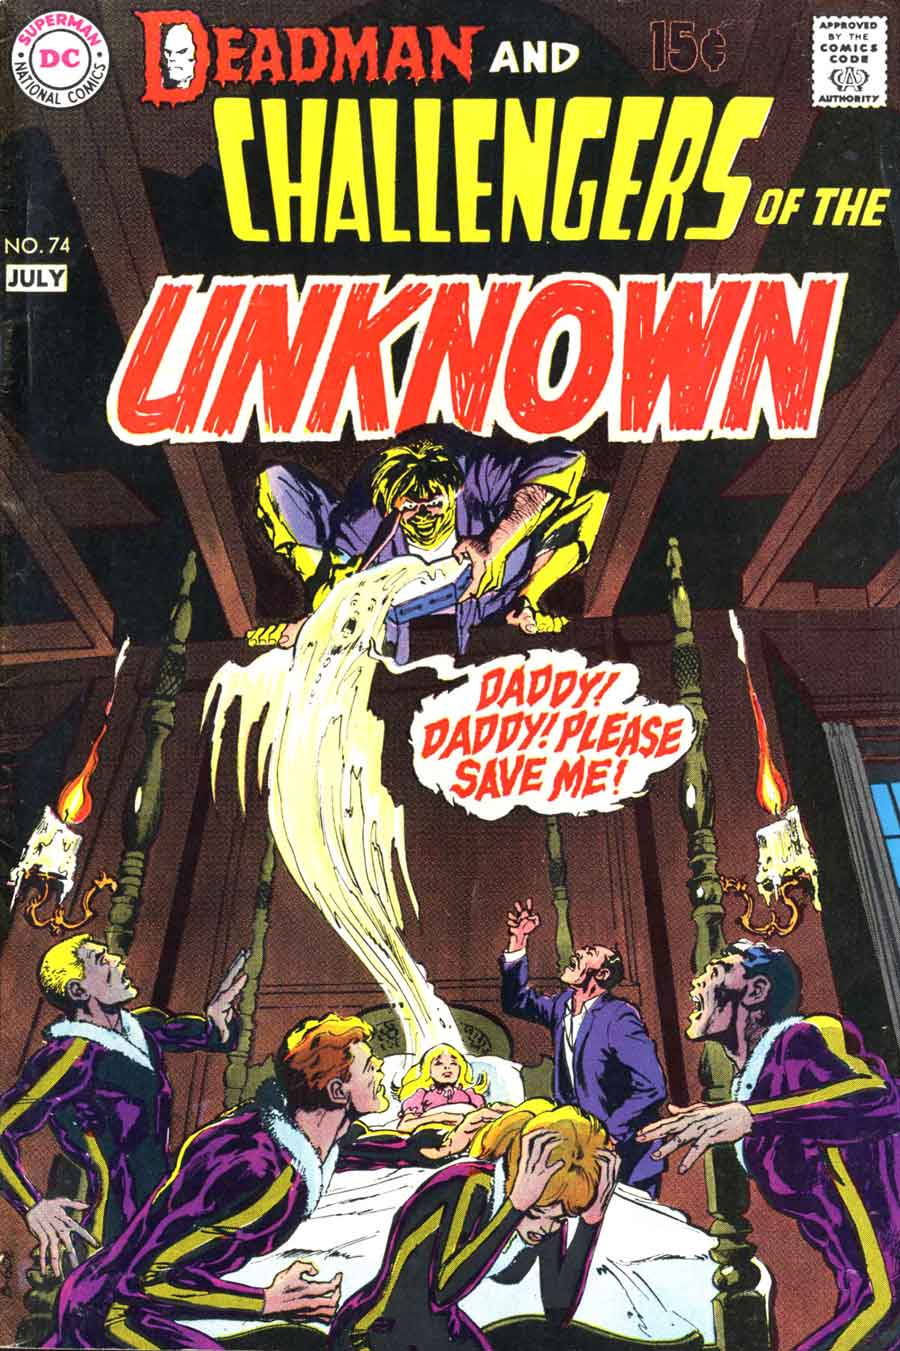 Challengers of the Unknown (1958) #74. Cover by Neal Adams.